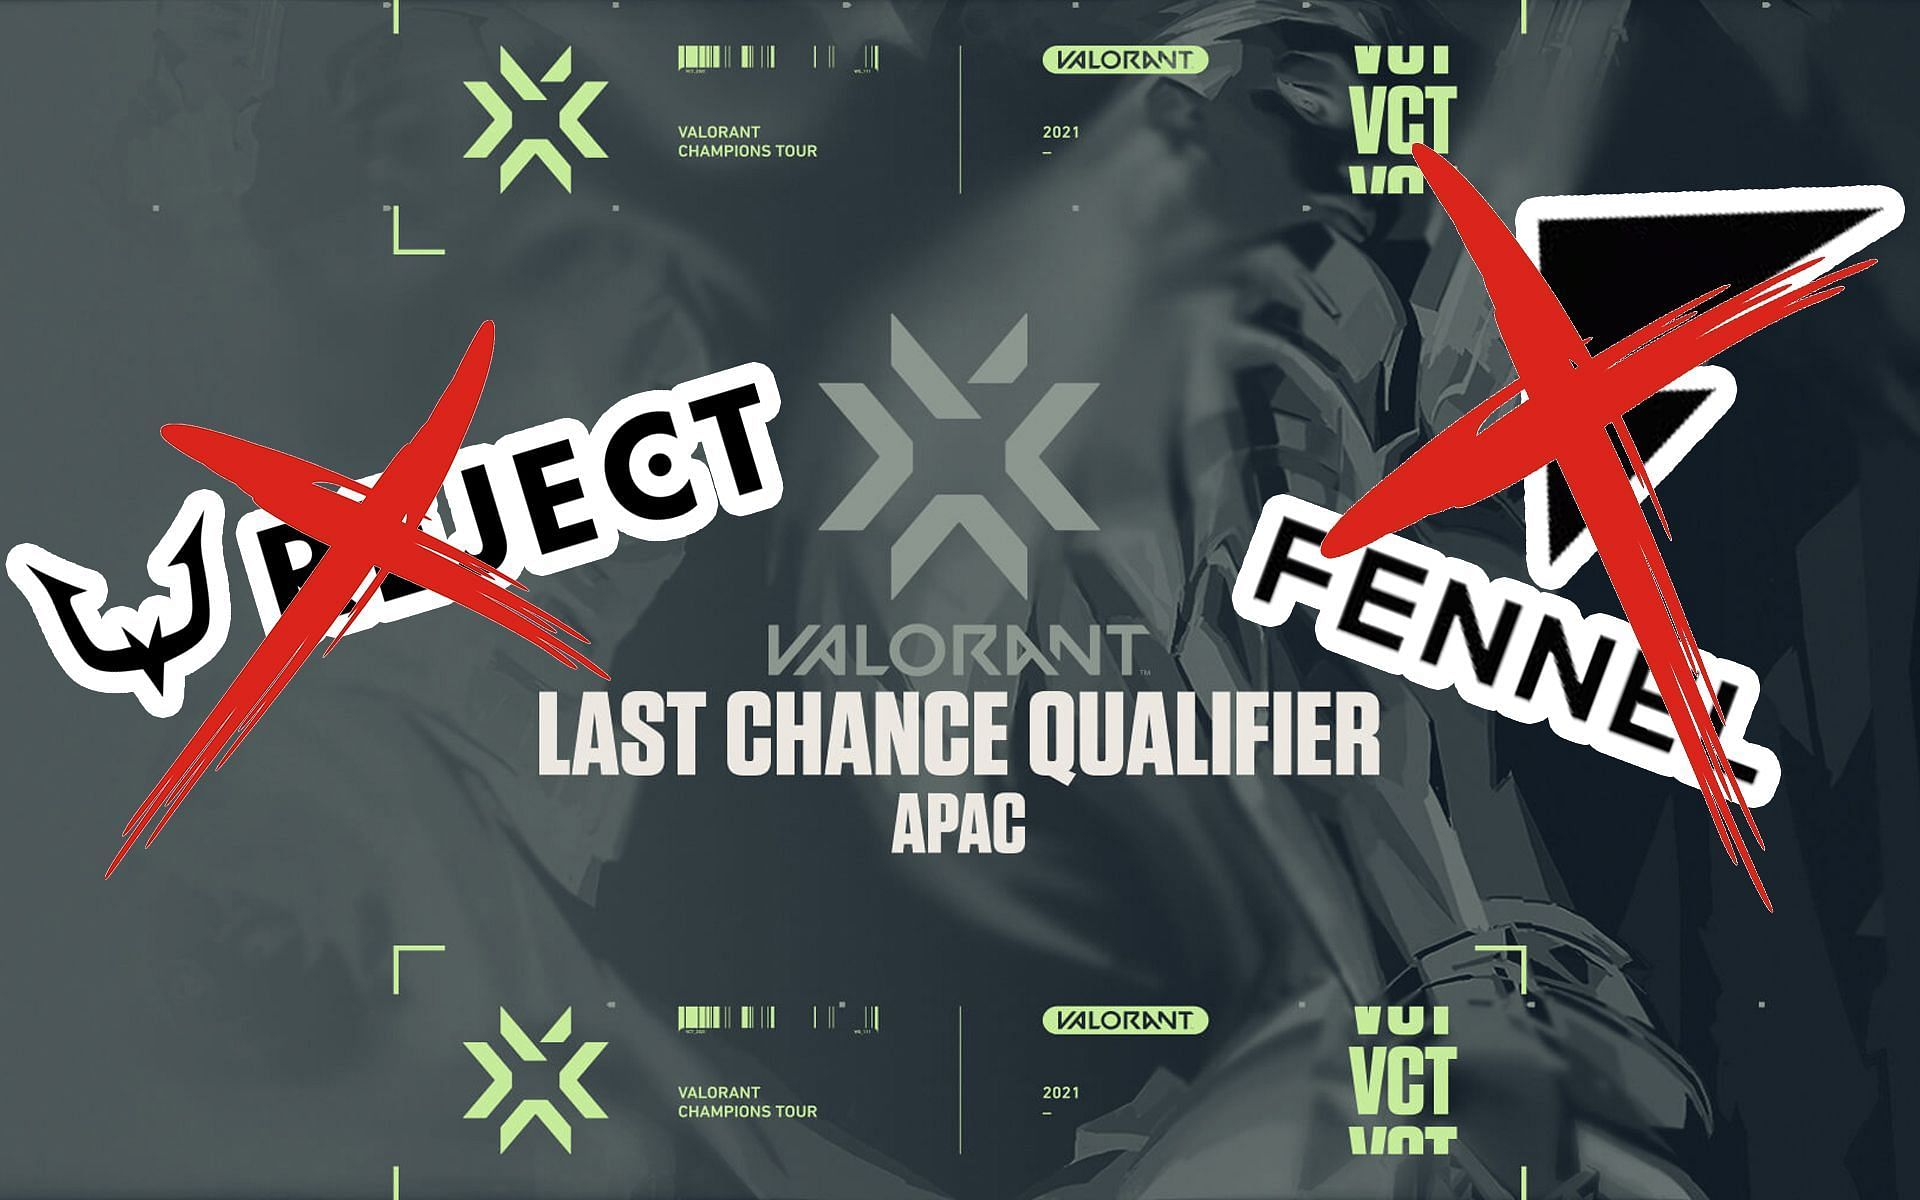 REJECT AND FENNEL gets eliminated in the Valorant Champions Tour APAC LCQ (Image by Sportskeeda)